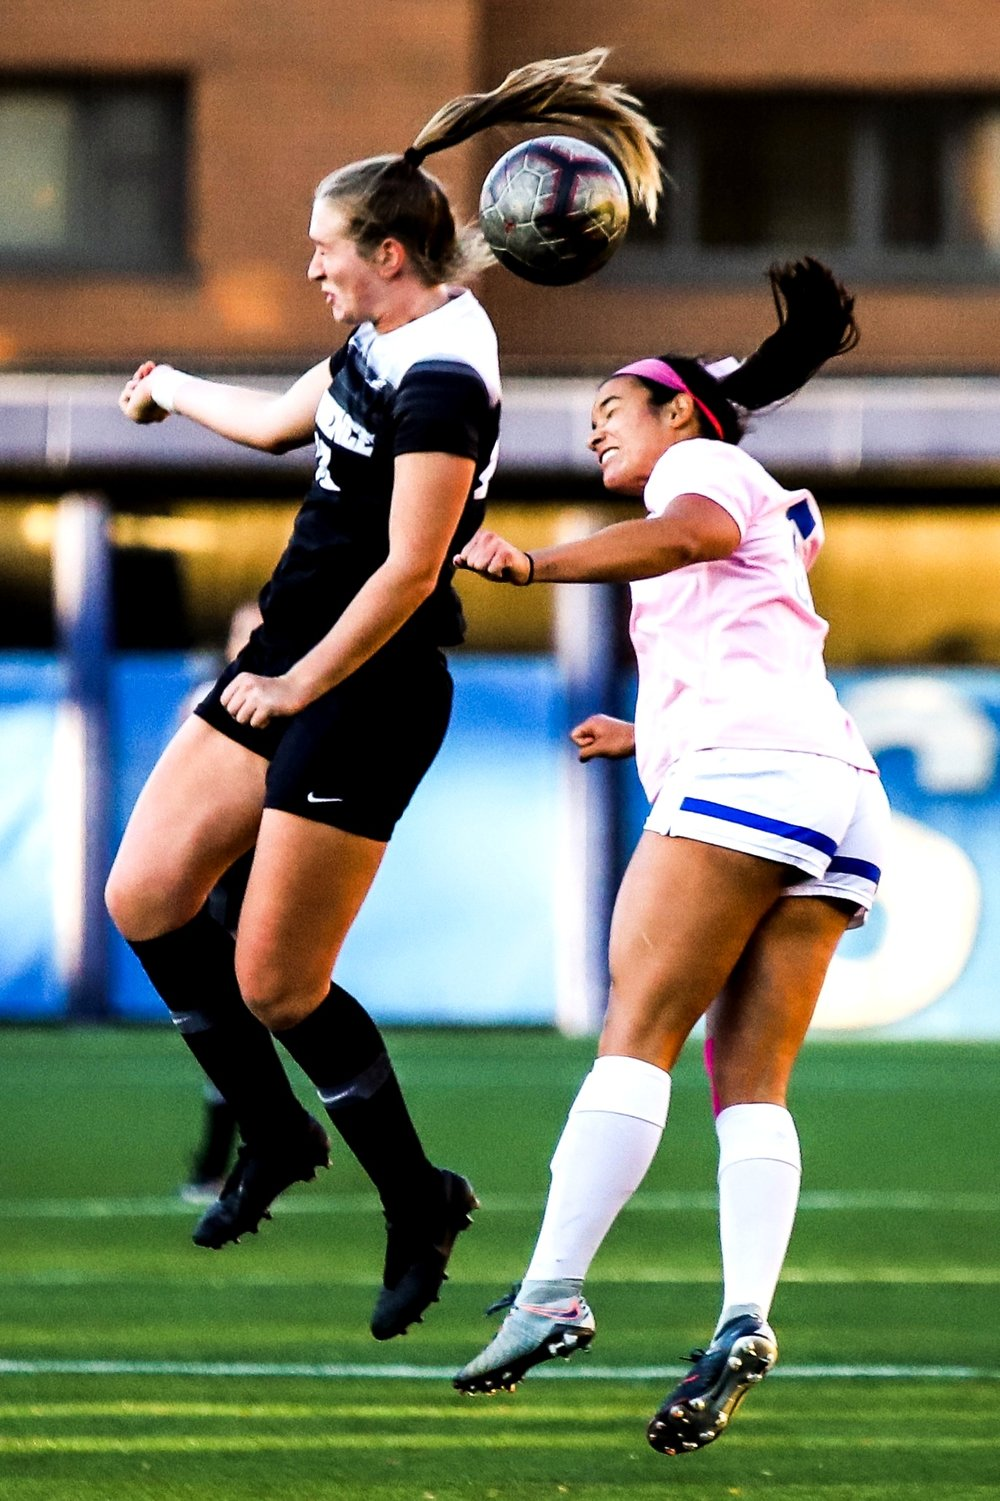 A Providence player and a DePaul player both jump to headbutt the ball.